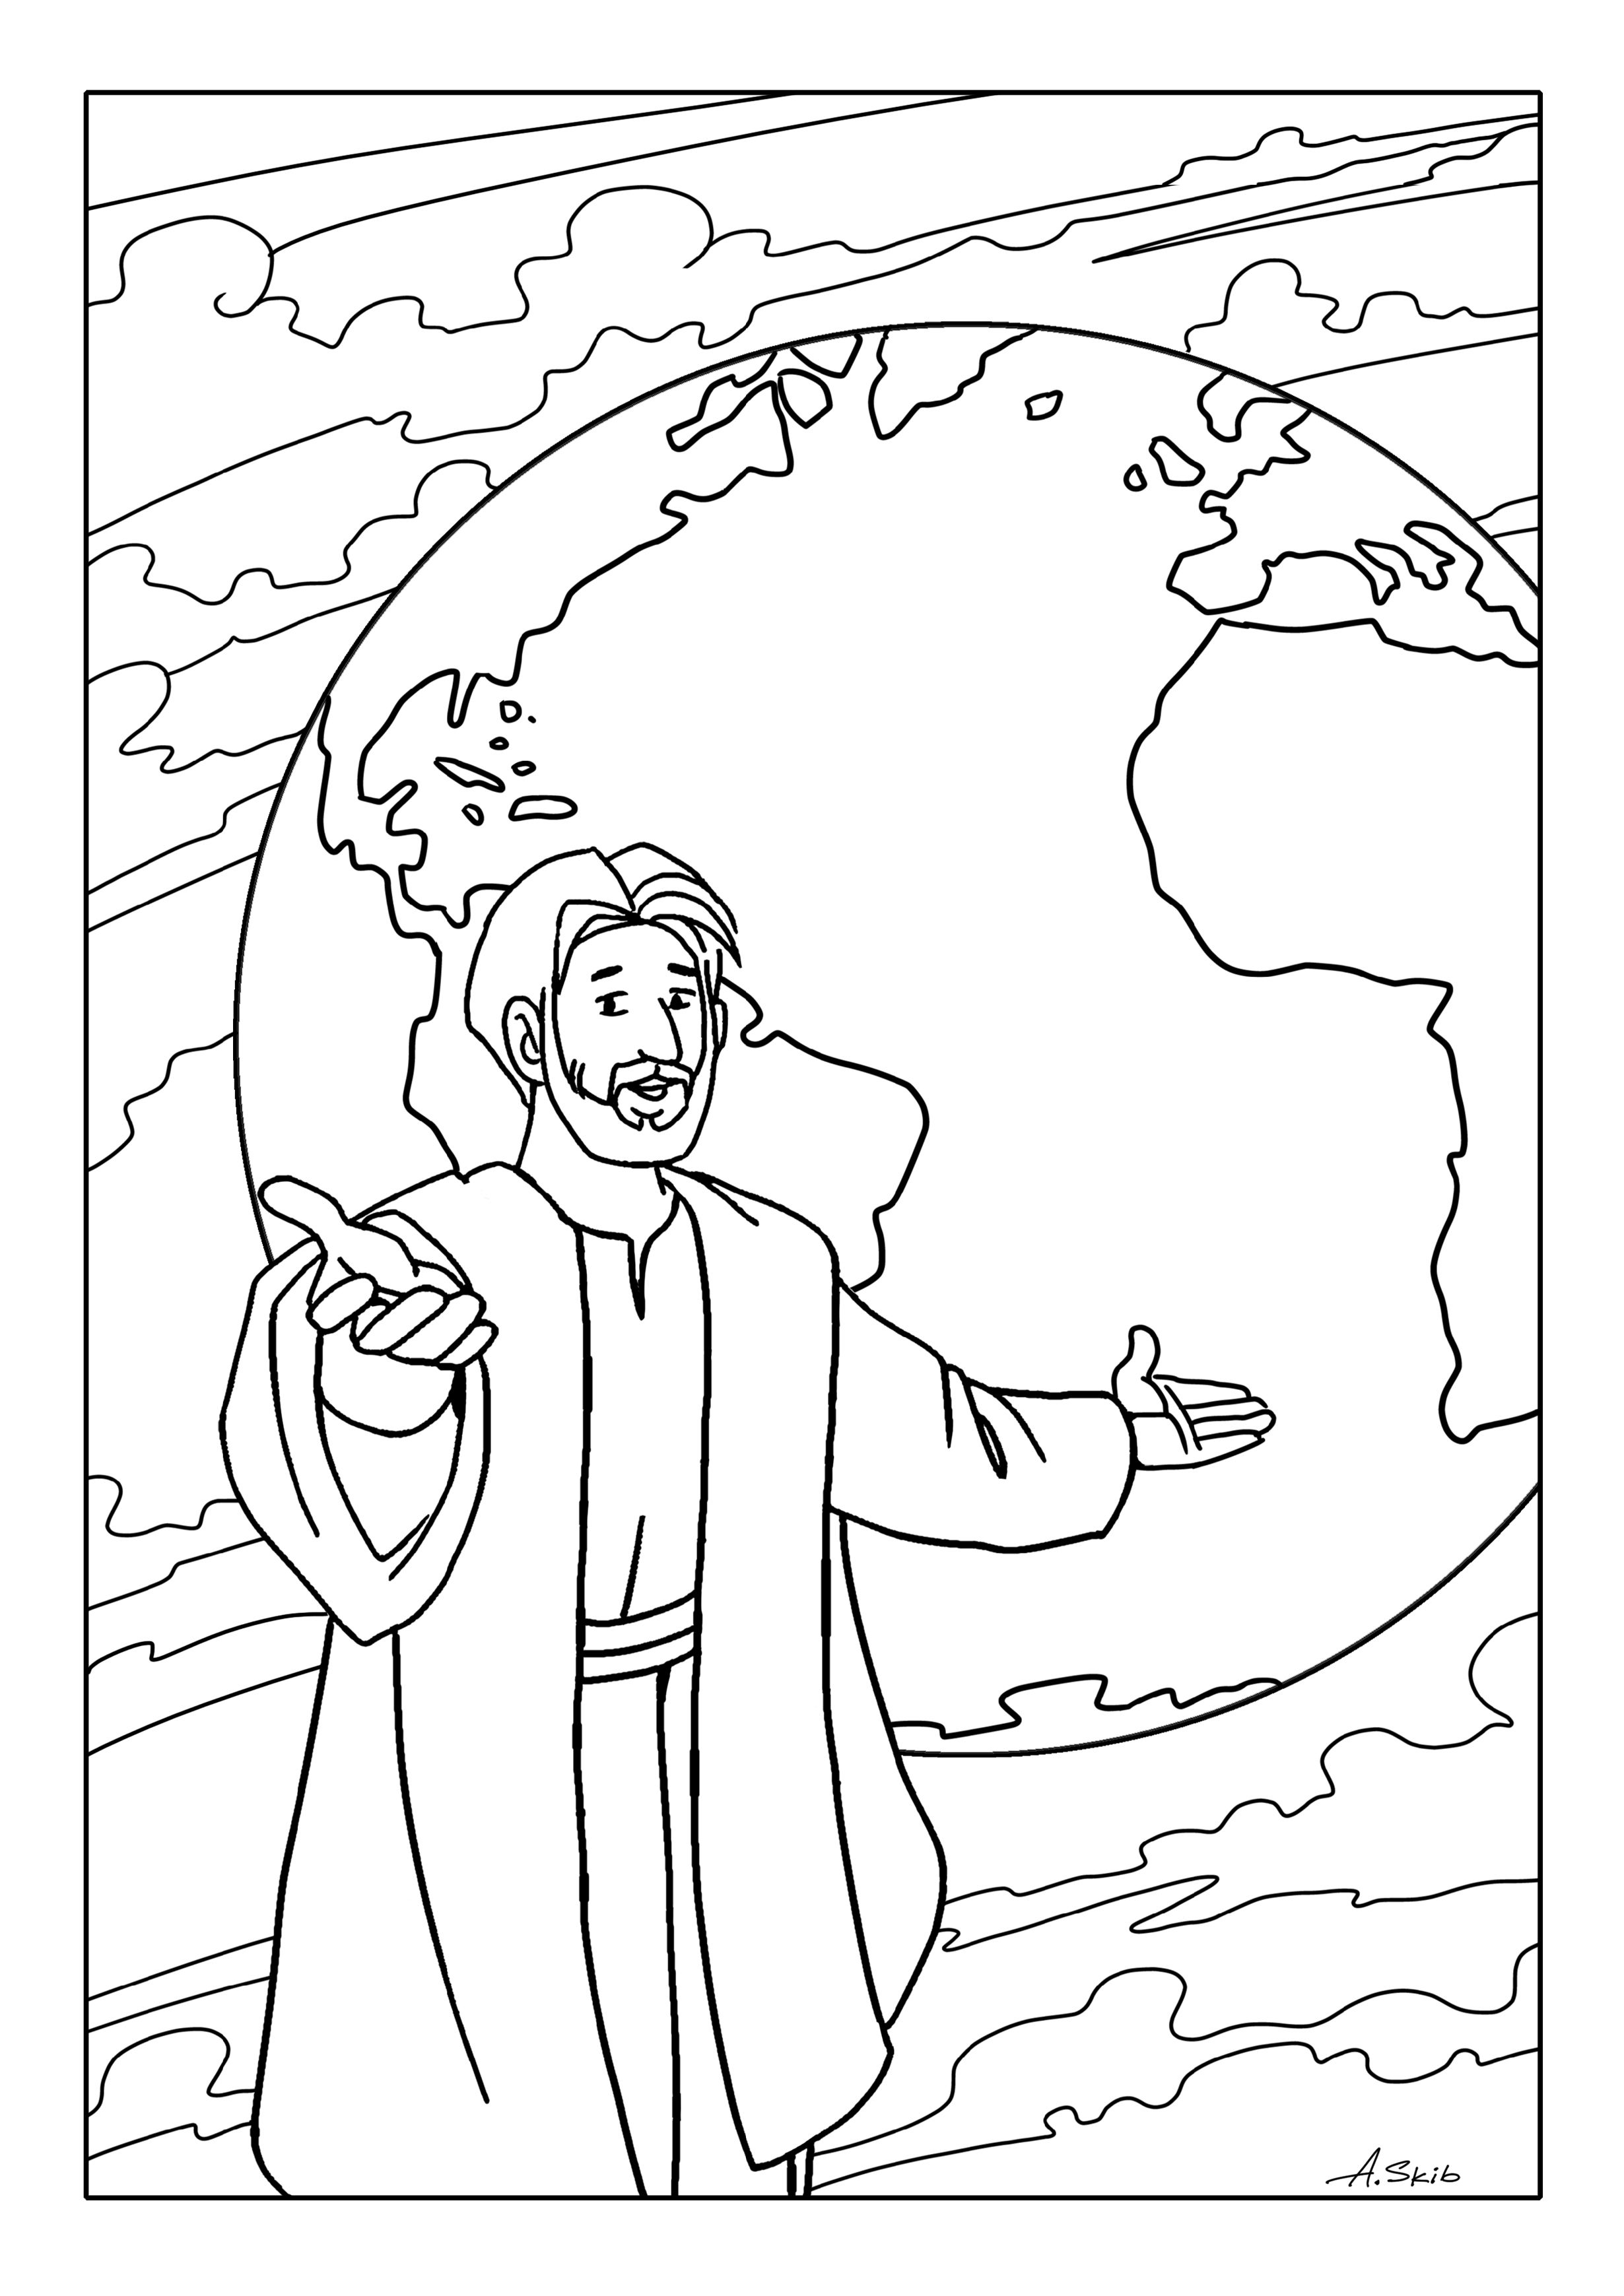 Free Coloring Pages The Great Commission | creating with kids ...